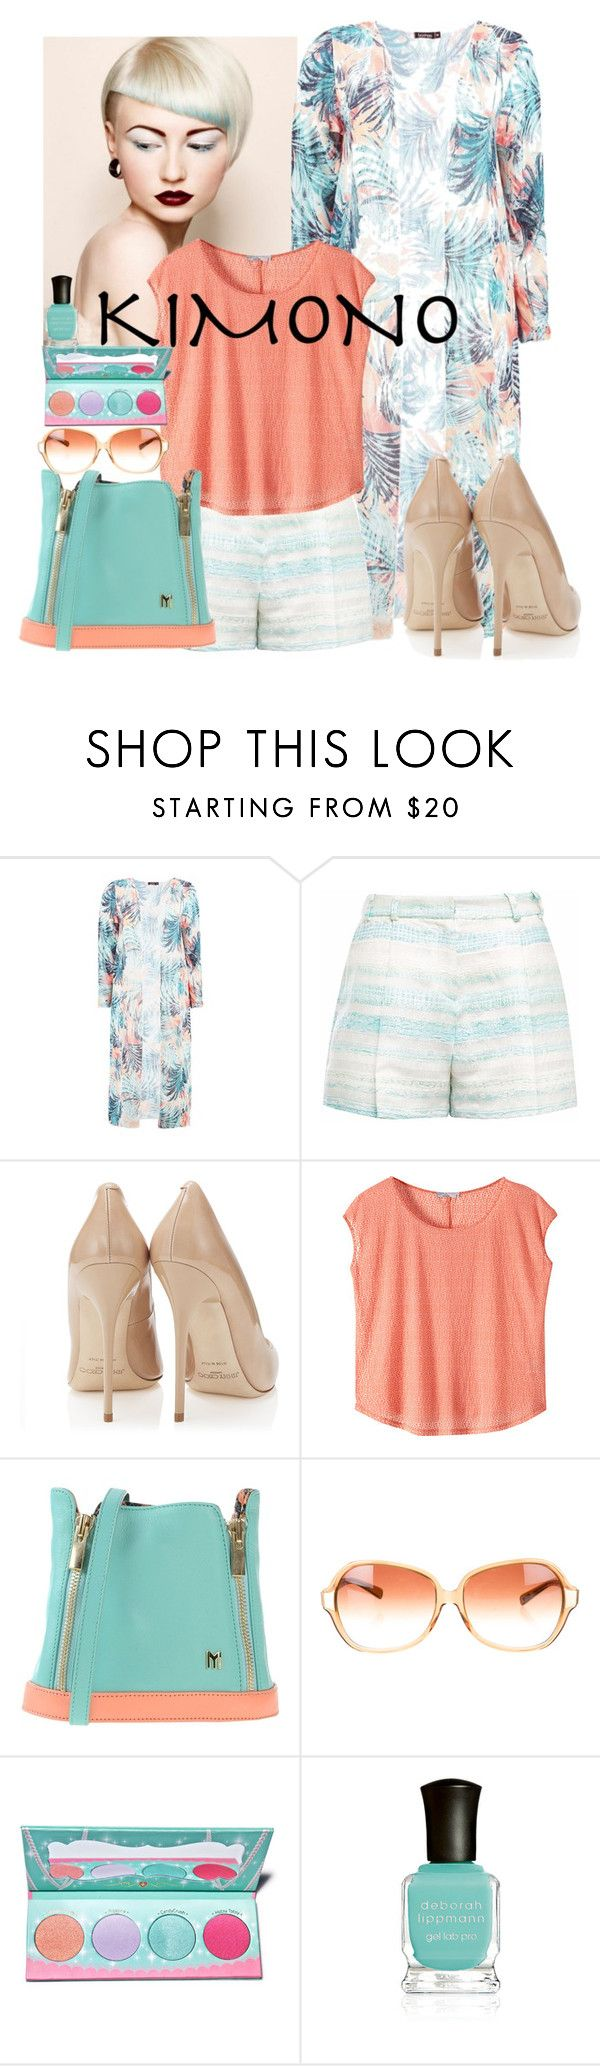 """Kimono Spring"" by terryjanlee ❤ liked on Polyvore featuring Gyunel, prAna, MYSUELLY, Oliver Peoples, Sugarpill, Deborah Lippmann and kimonos"